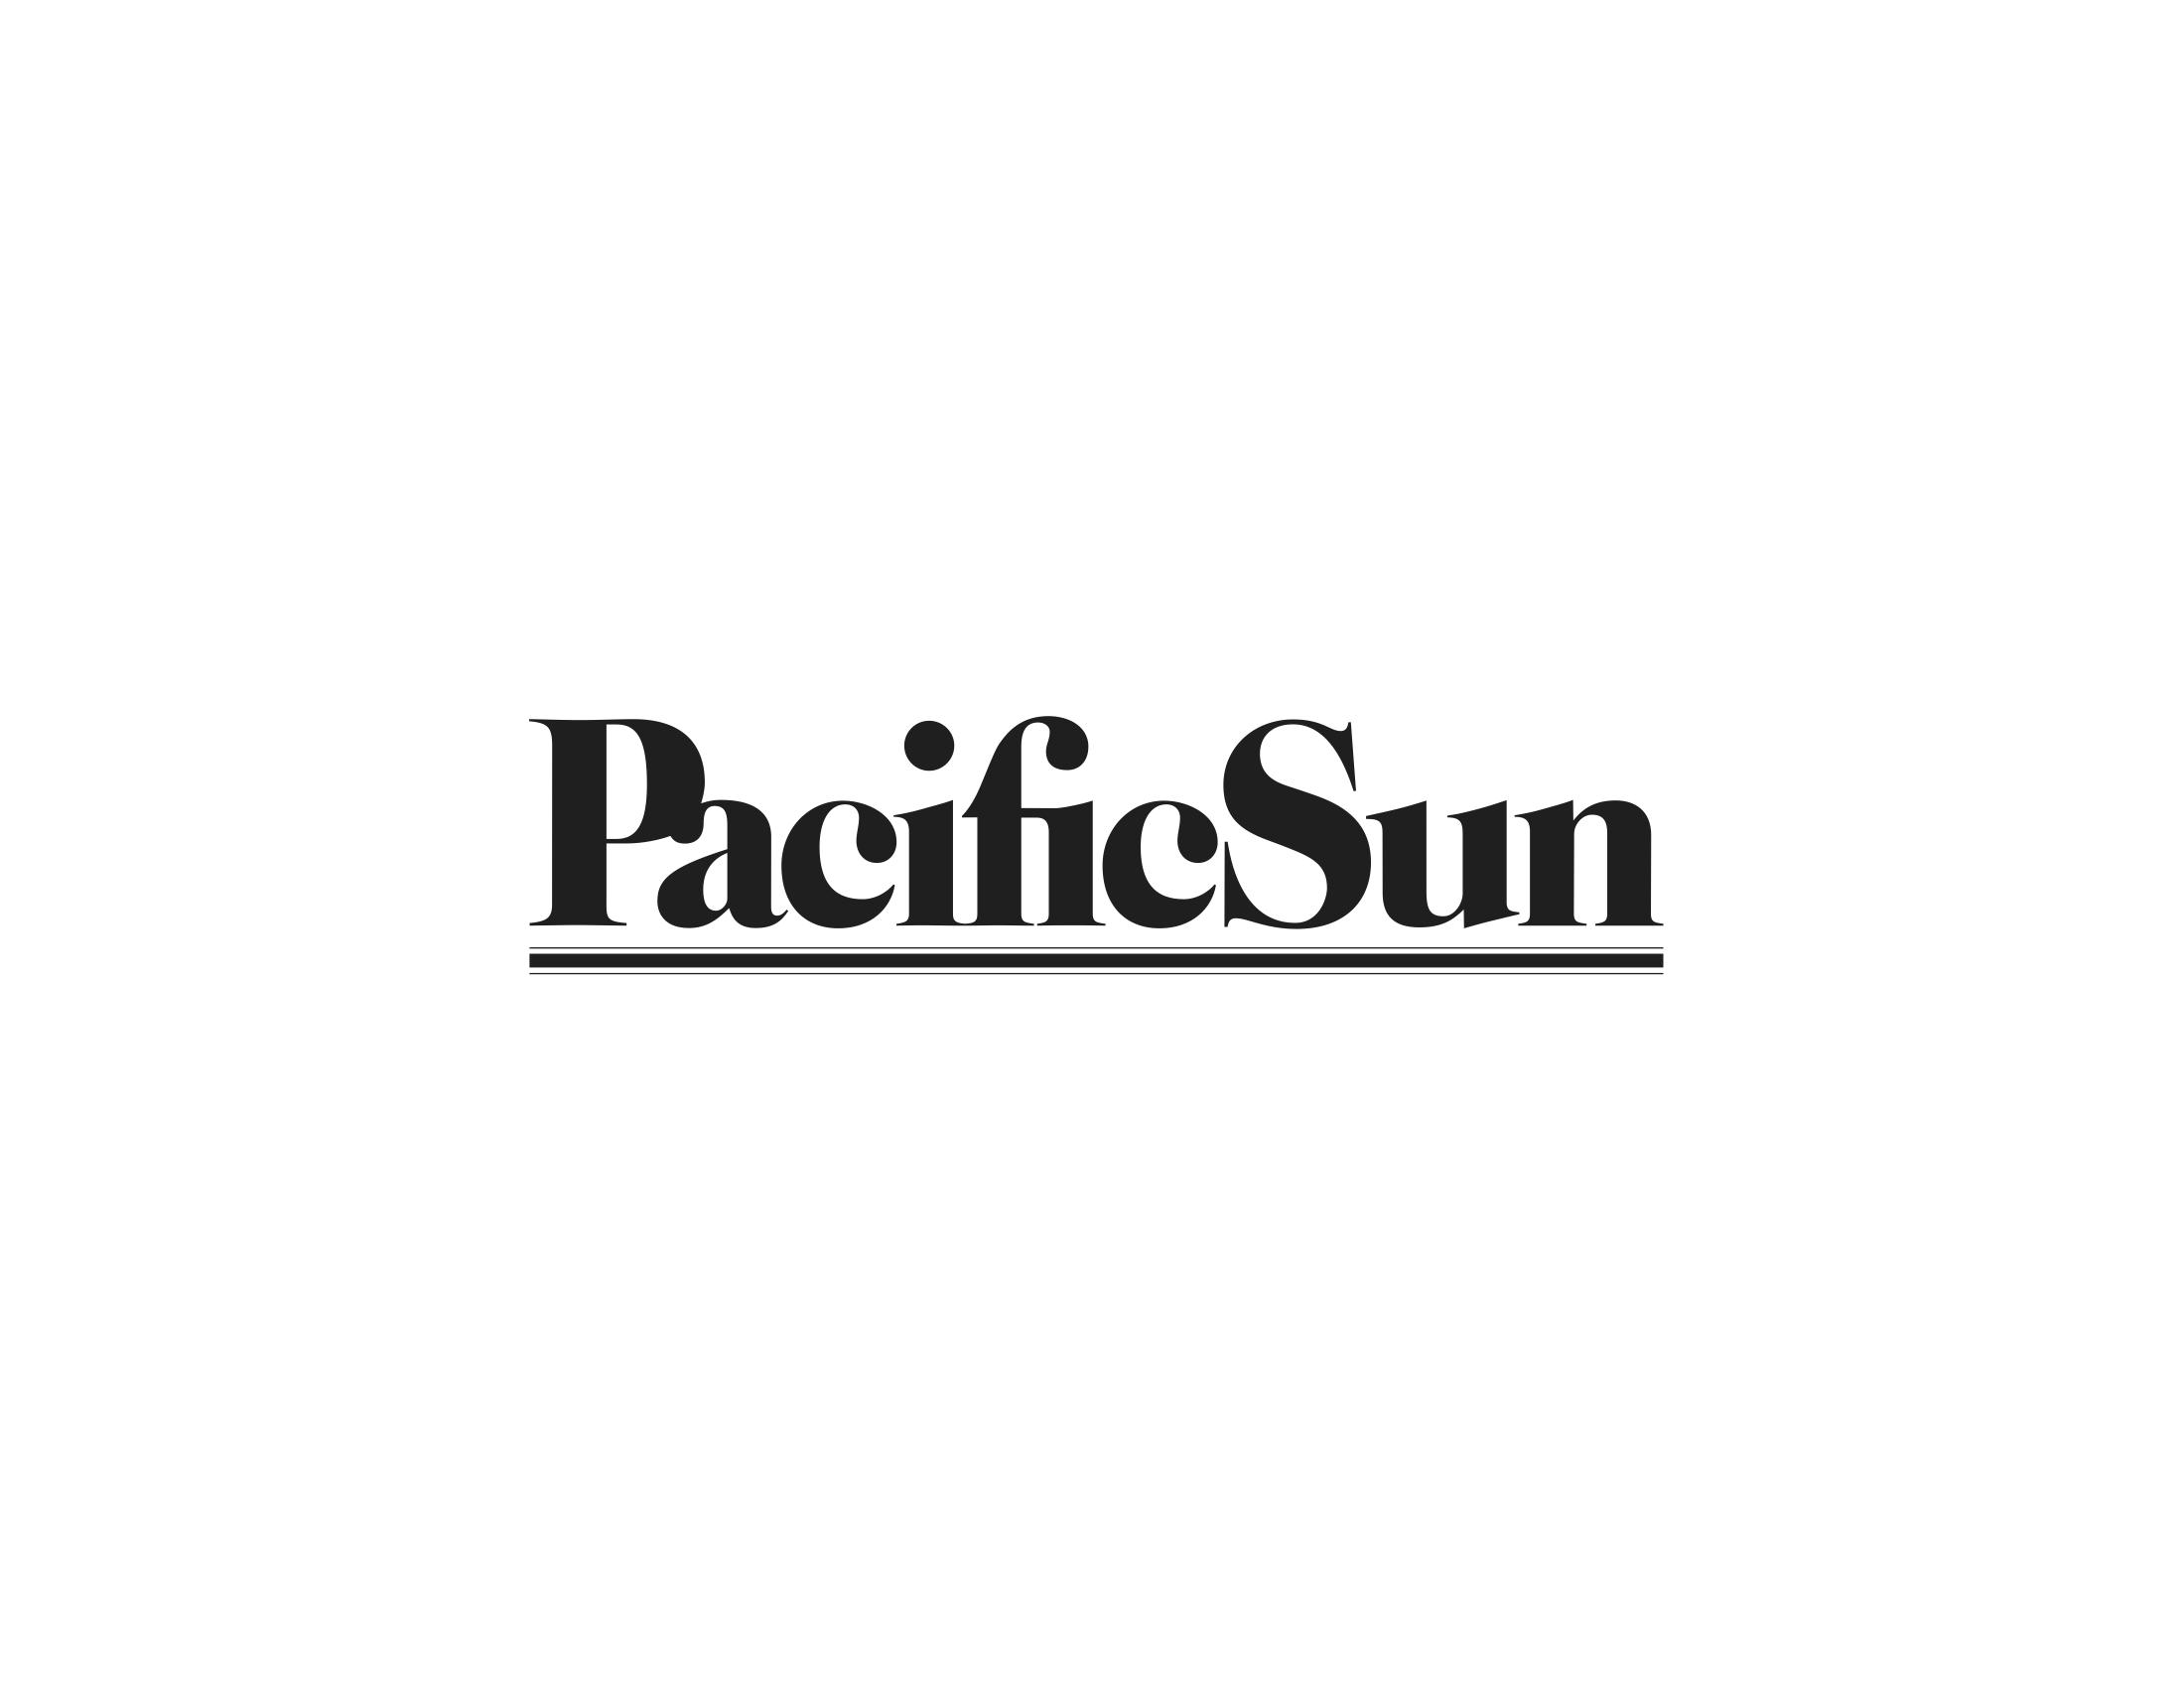 - PACIFIC SUNOur goal is to cover this unique community—to inform, and be informed by, our readers in a thoughtful, provocative, literate, witty and honest manner. The Pacific Sun publishes every Wednesday, delivering 22,000 copies to more than 560 locations throughout Marin County.